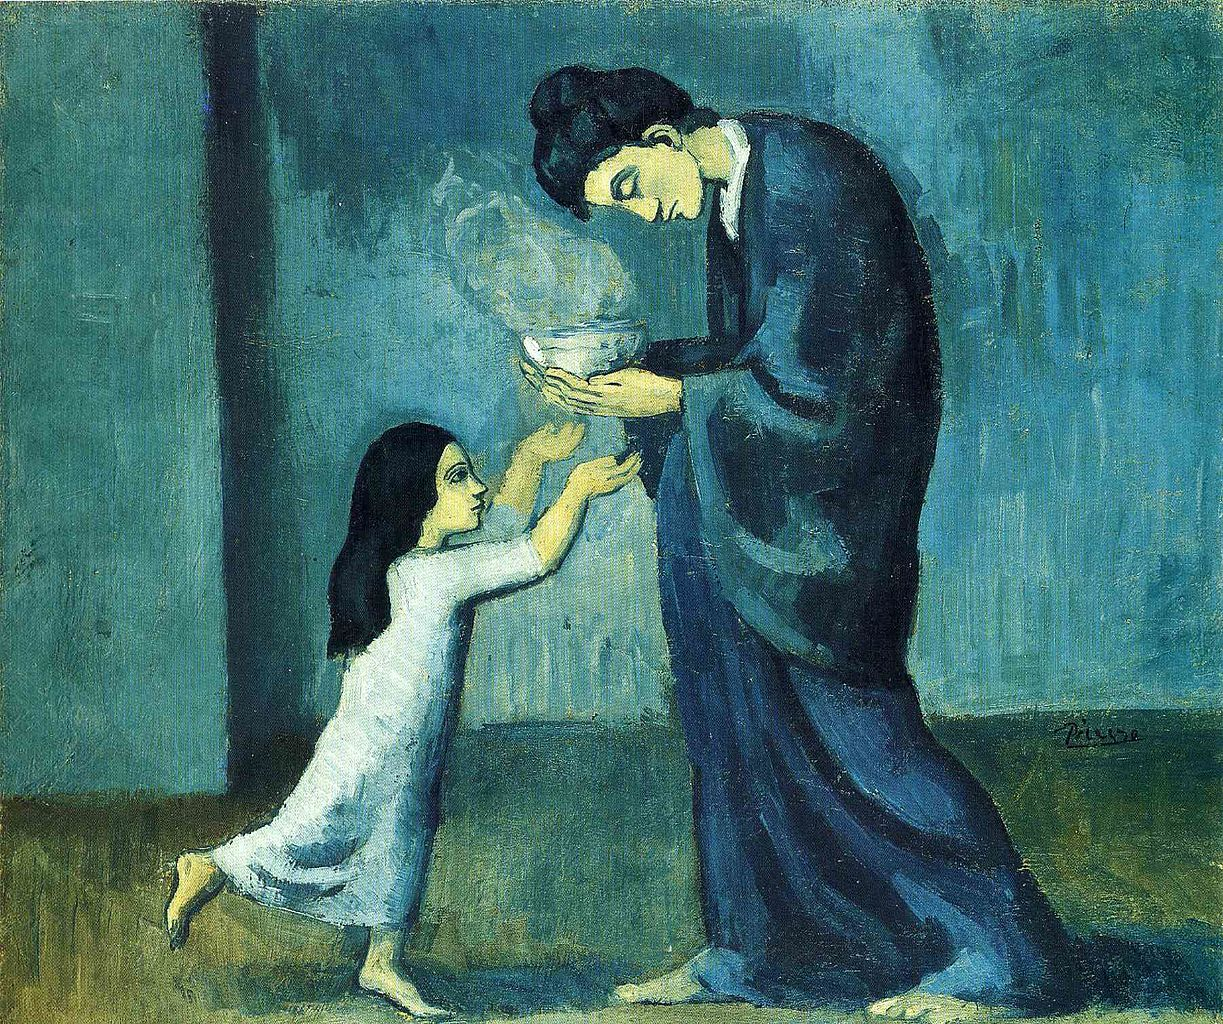 file pablo picasso la soupe the soup oil on canvas file pablo picasso 1902 03 la soupe the soup oil on canvas 38 5 x 46 0 cm art gallery of ontario toronto jpg